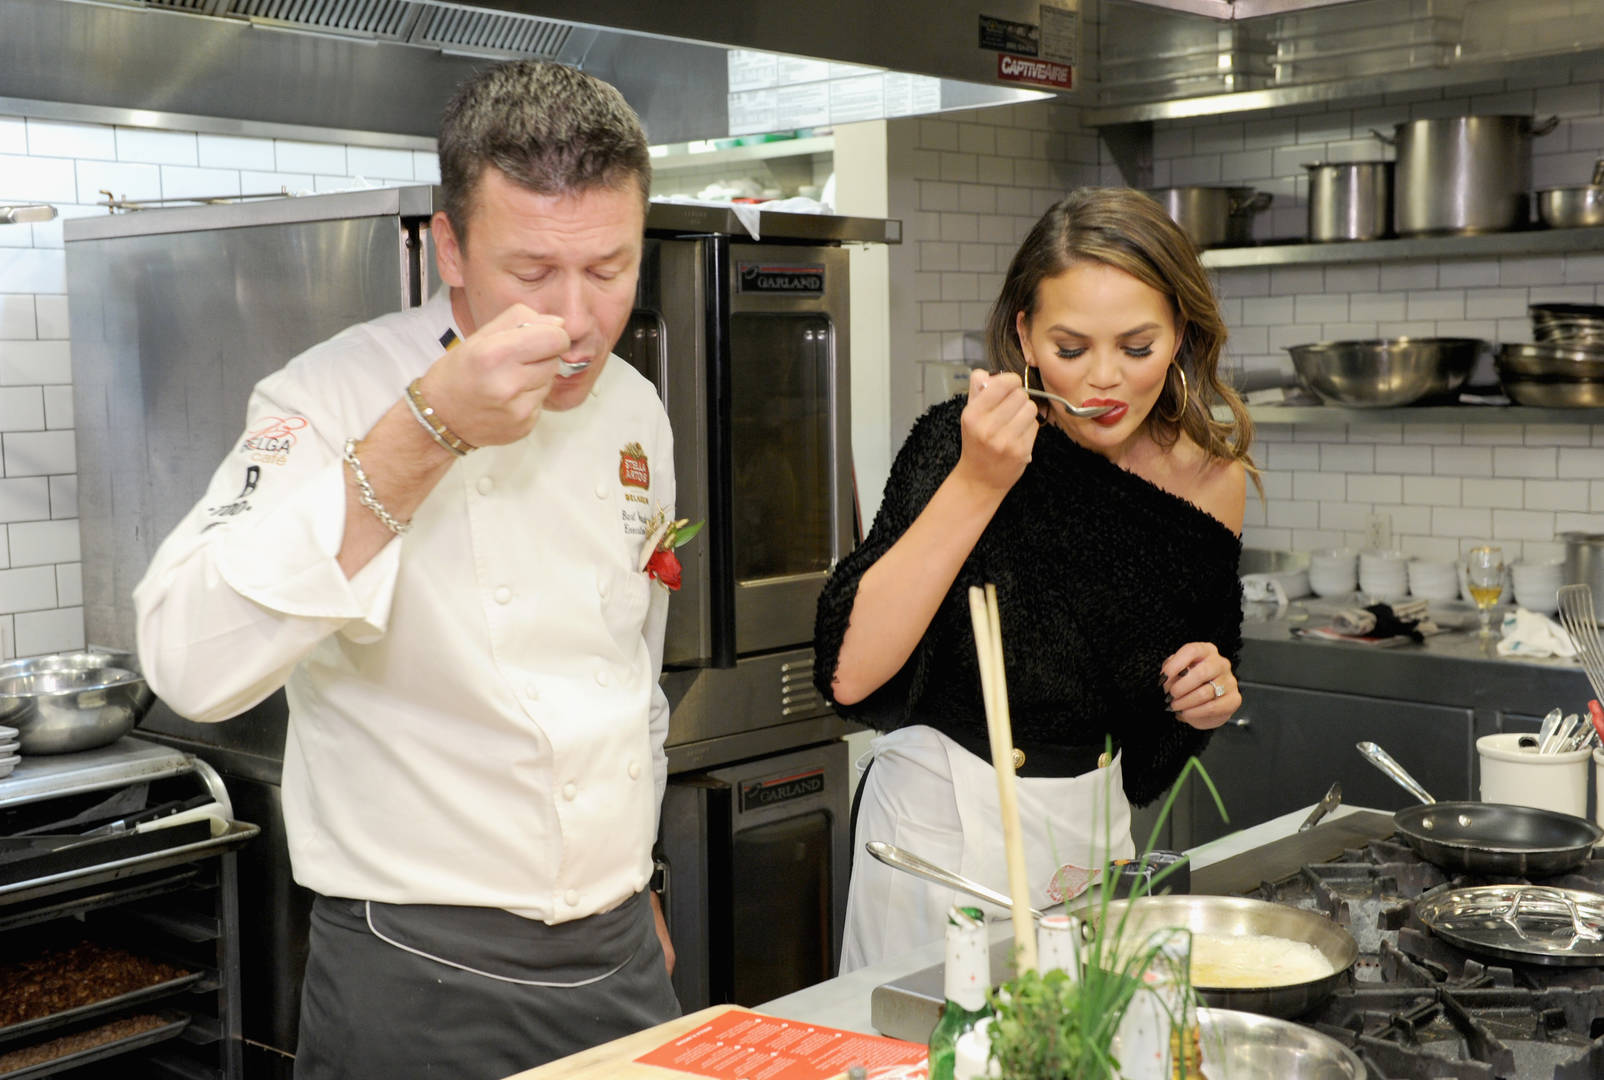 Chrissy Teigen & Fellow Cookbook Author Alison Roman Squash Beef